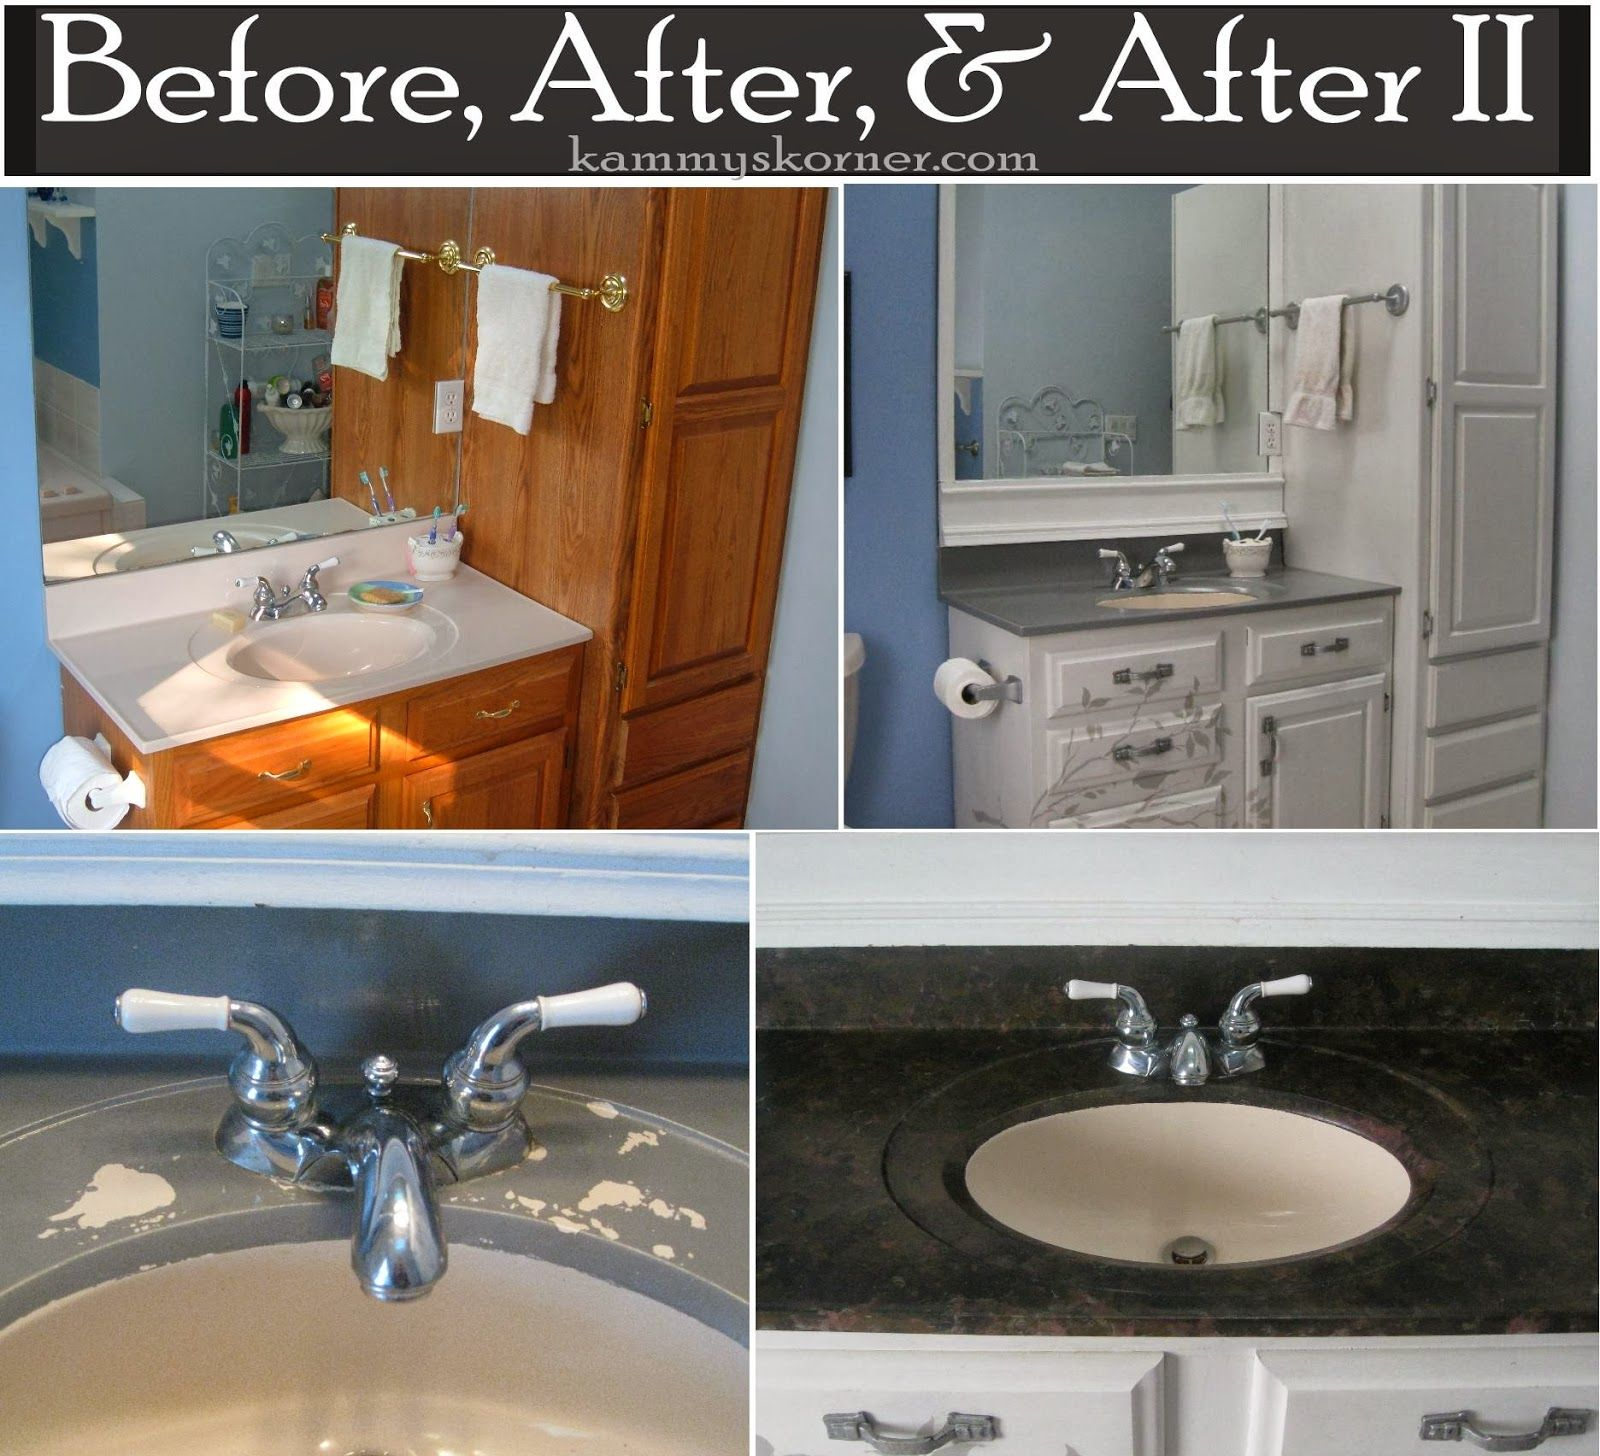 Painting A Porcelain Vanity Countertop New And Improved